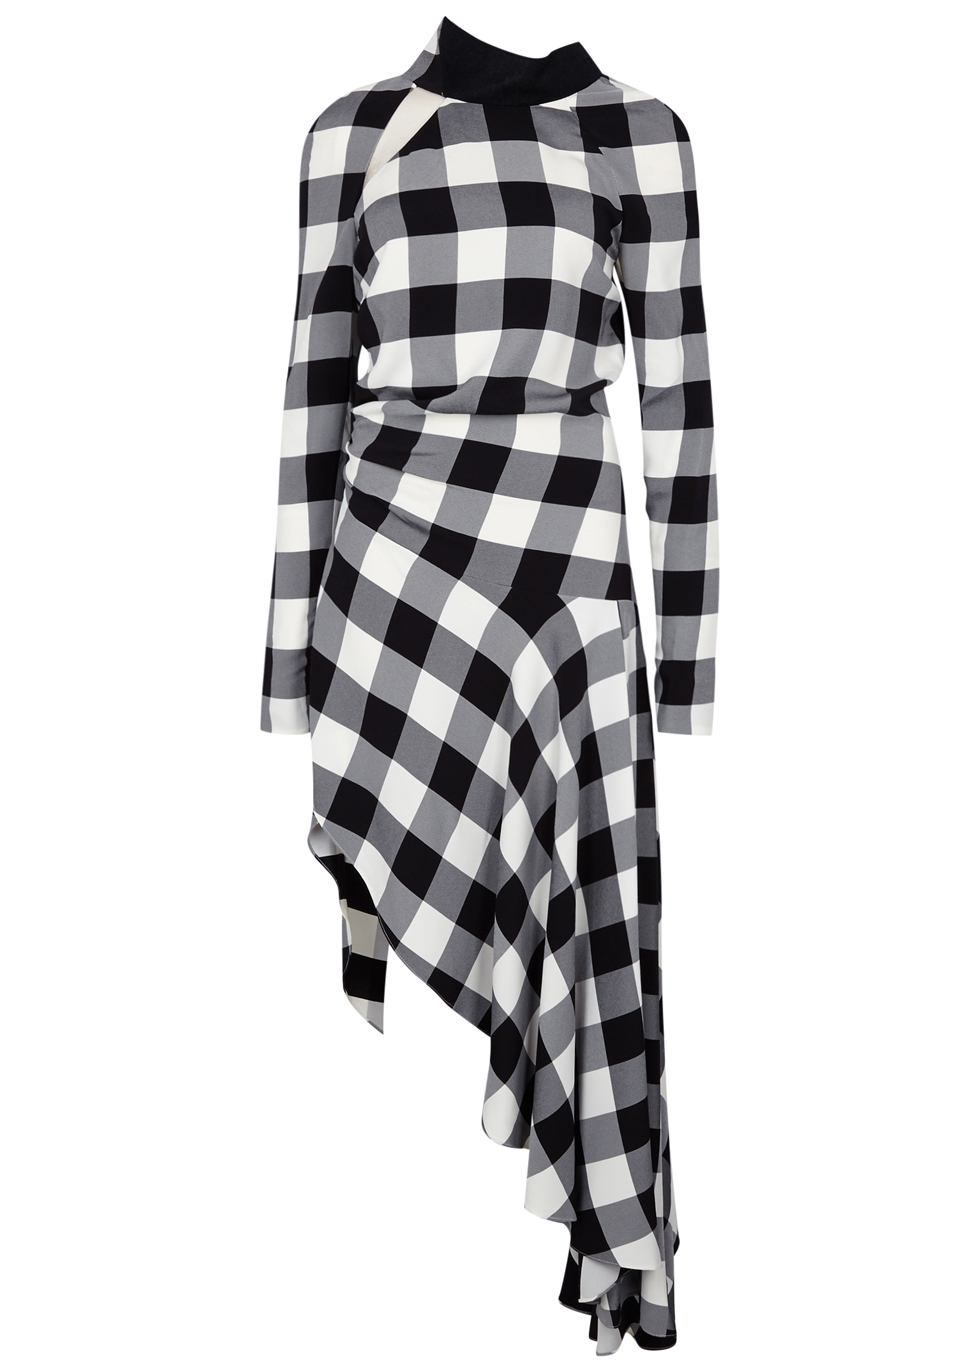 MONOCHROME CHECKED ASYMMETRIC DRESS